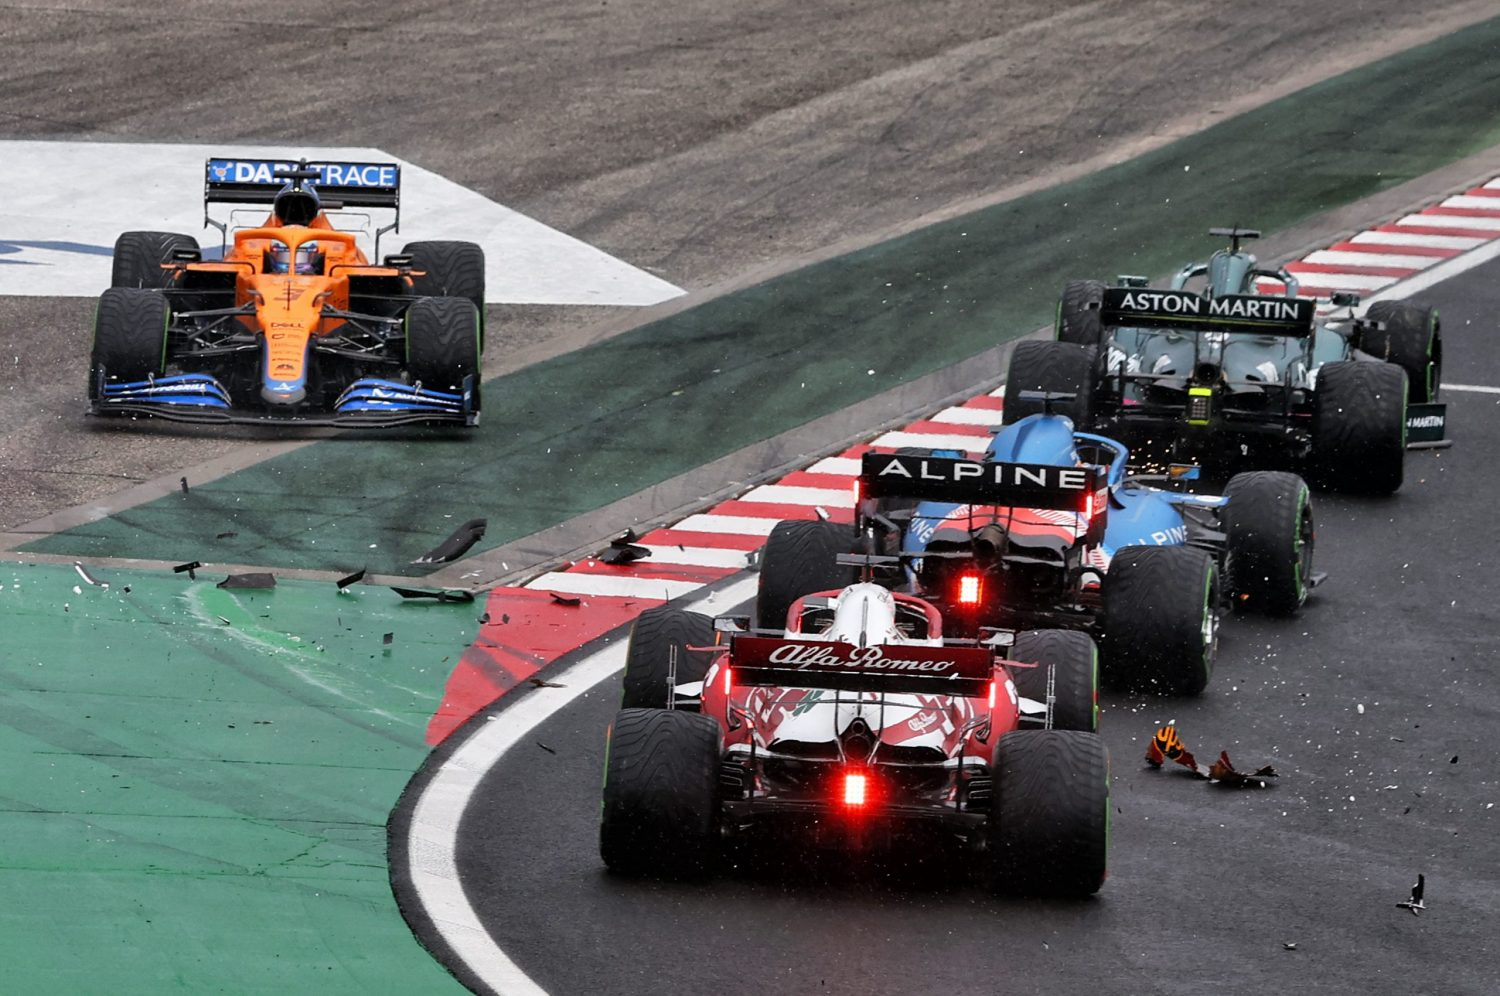 Ricciardo reckons he 'could have been up there' in Hungary